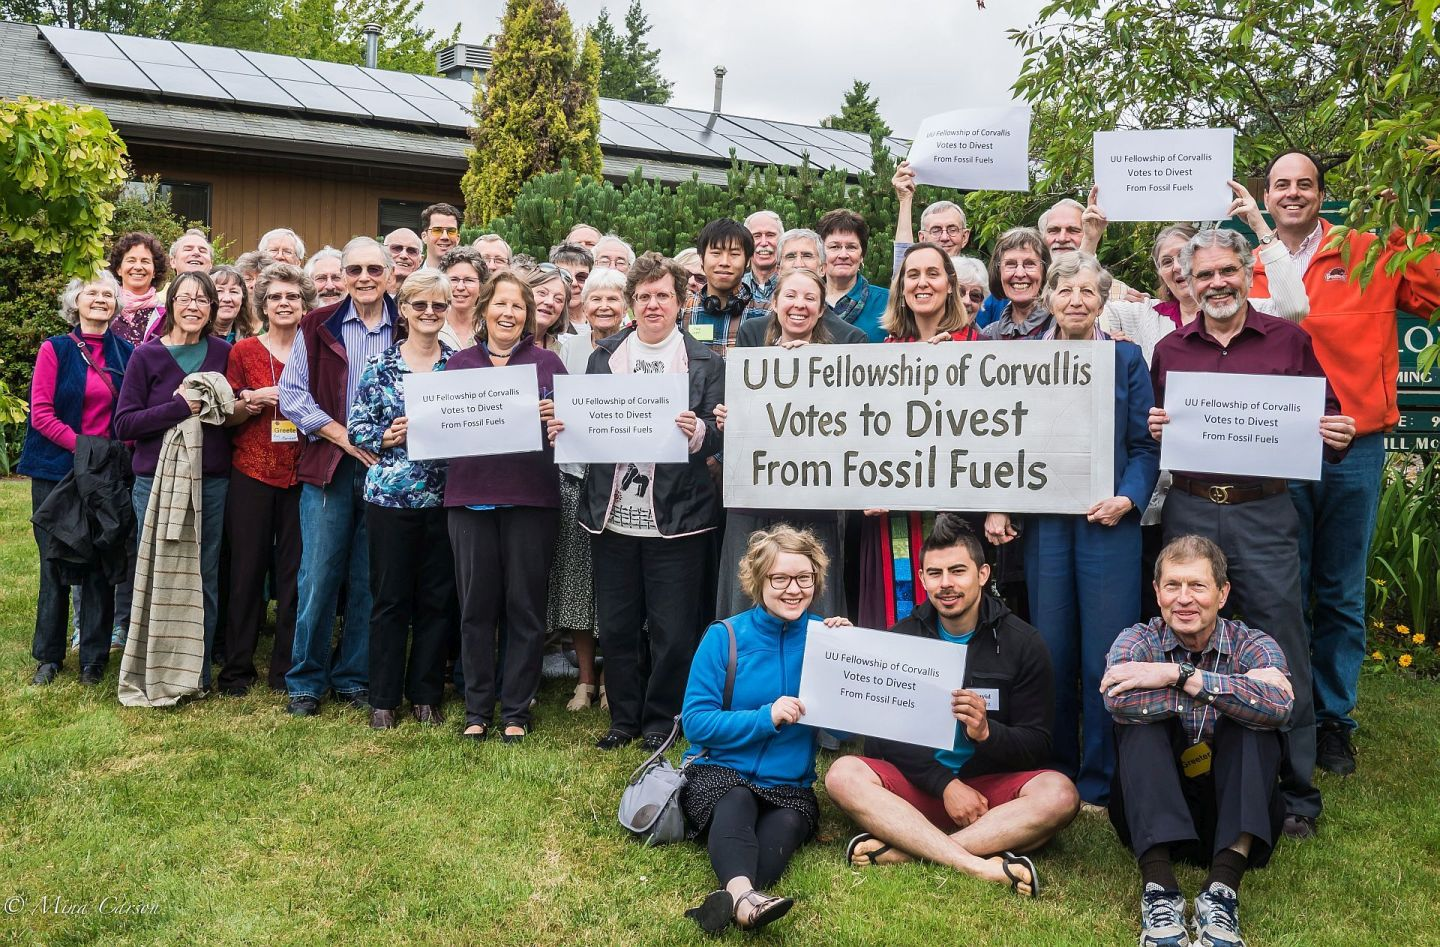 UU Fellowship of Corvallis gathered outside of the building in celebration